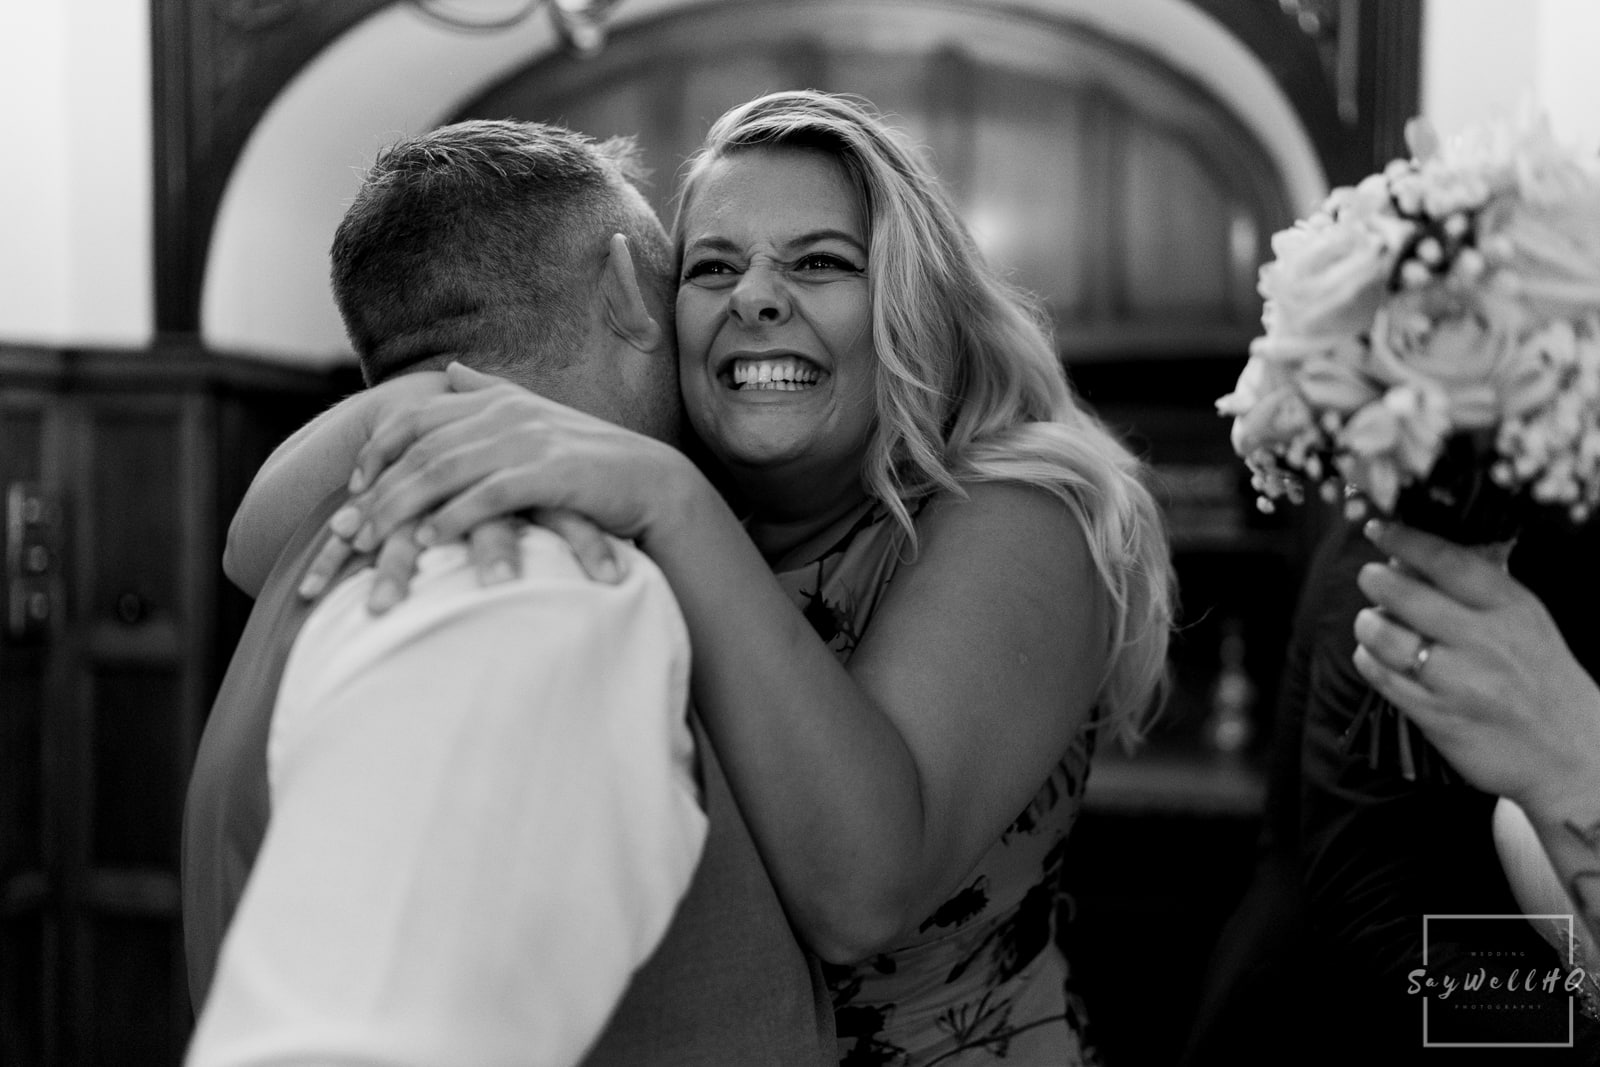 Woodborough Hall Wedding Photography + wedding guest hugs the groom after the wedding ceremony